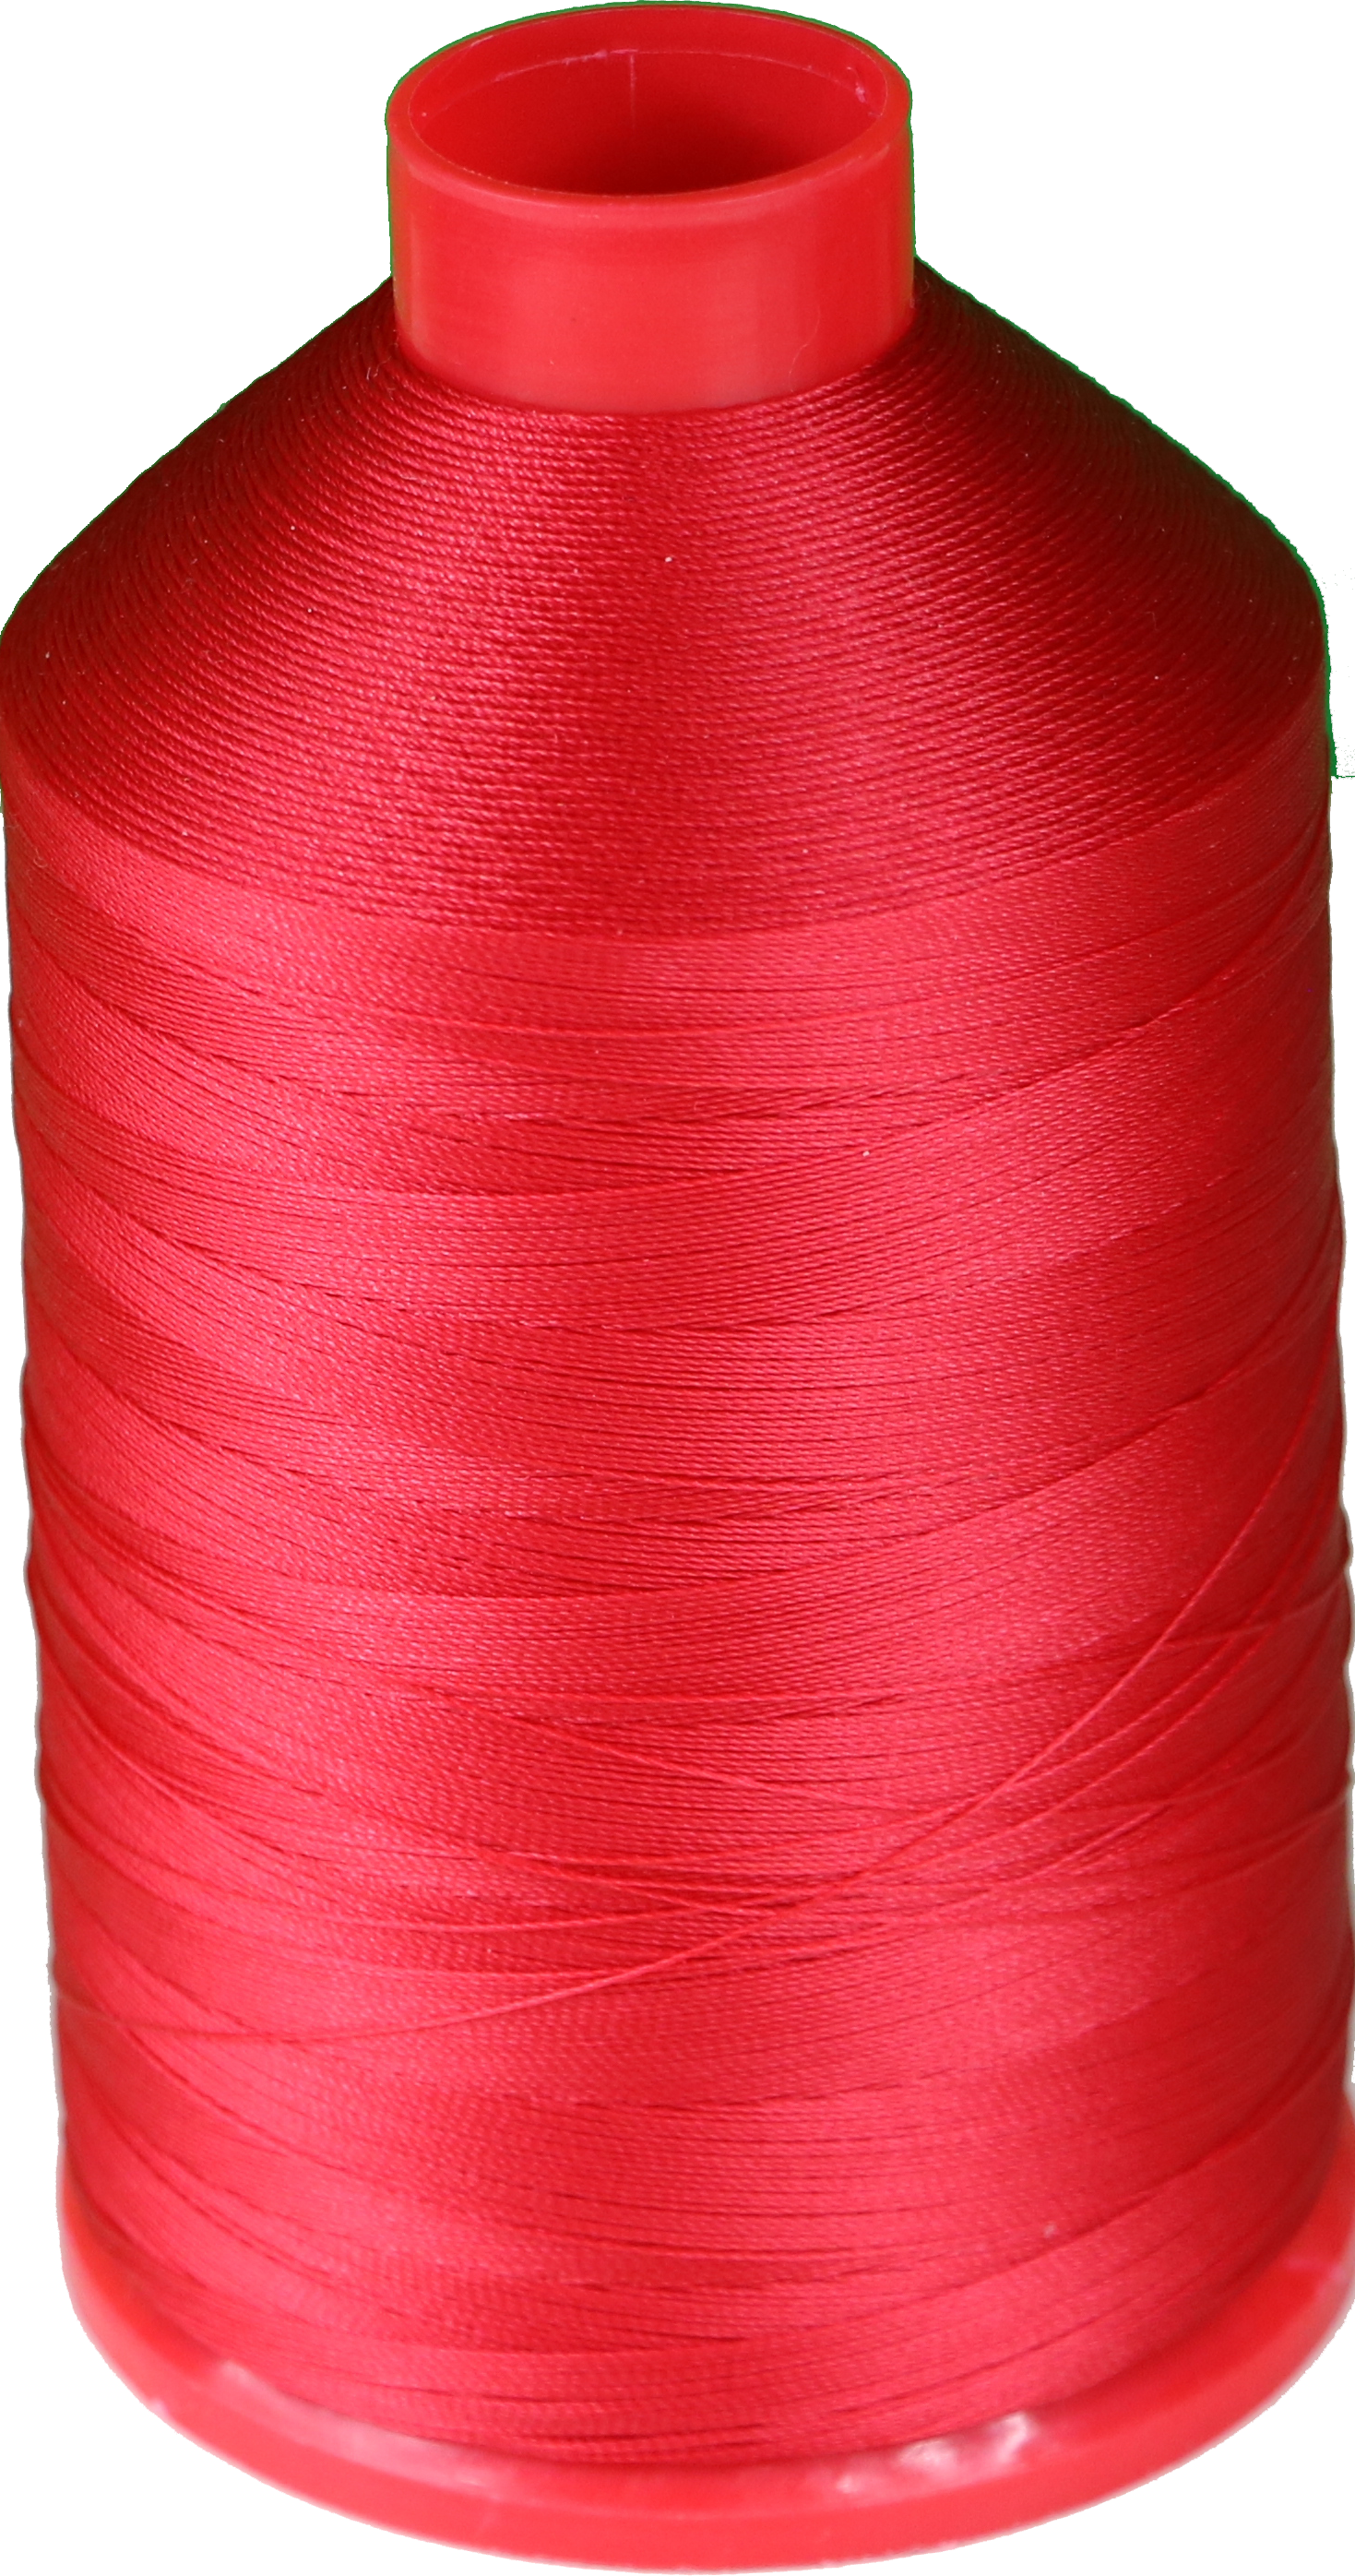 Tex 30, Color 4051 (red) nylon thread 250G Spool